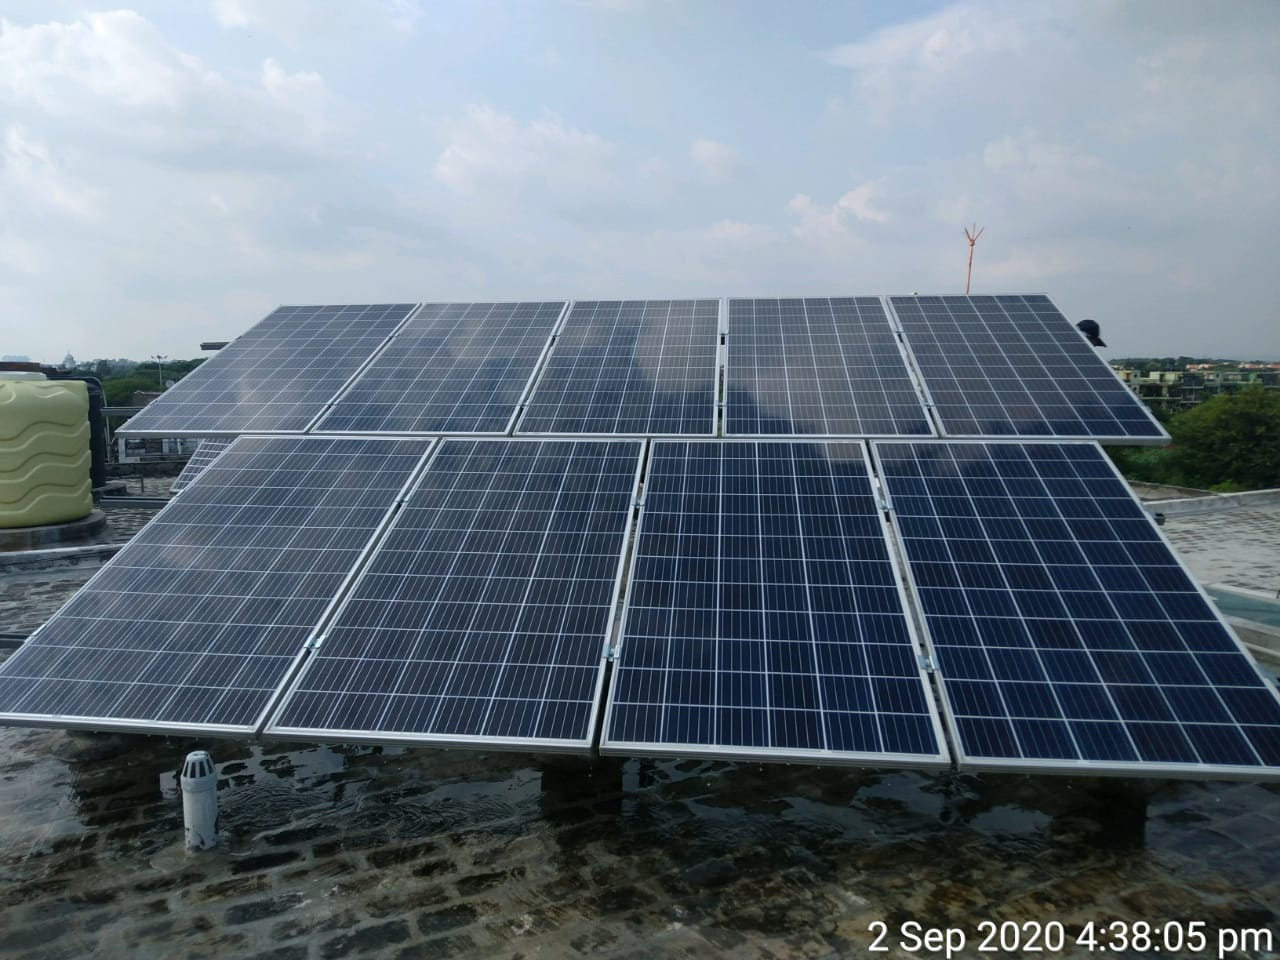 Cleaned solar panels